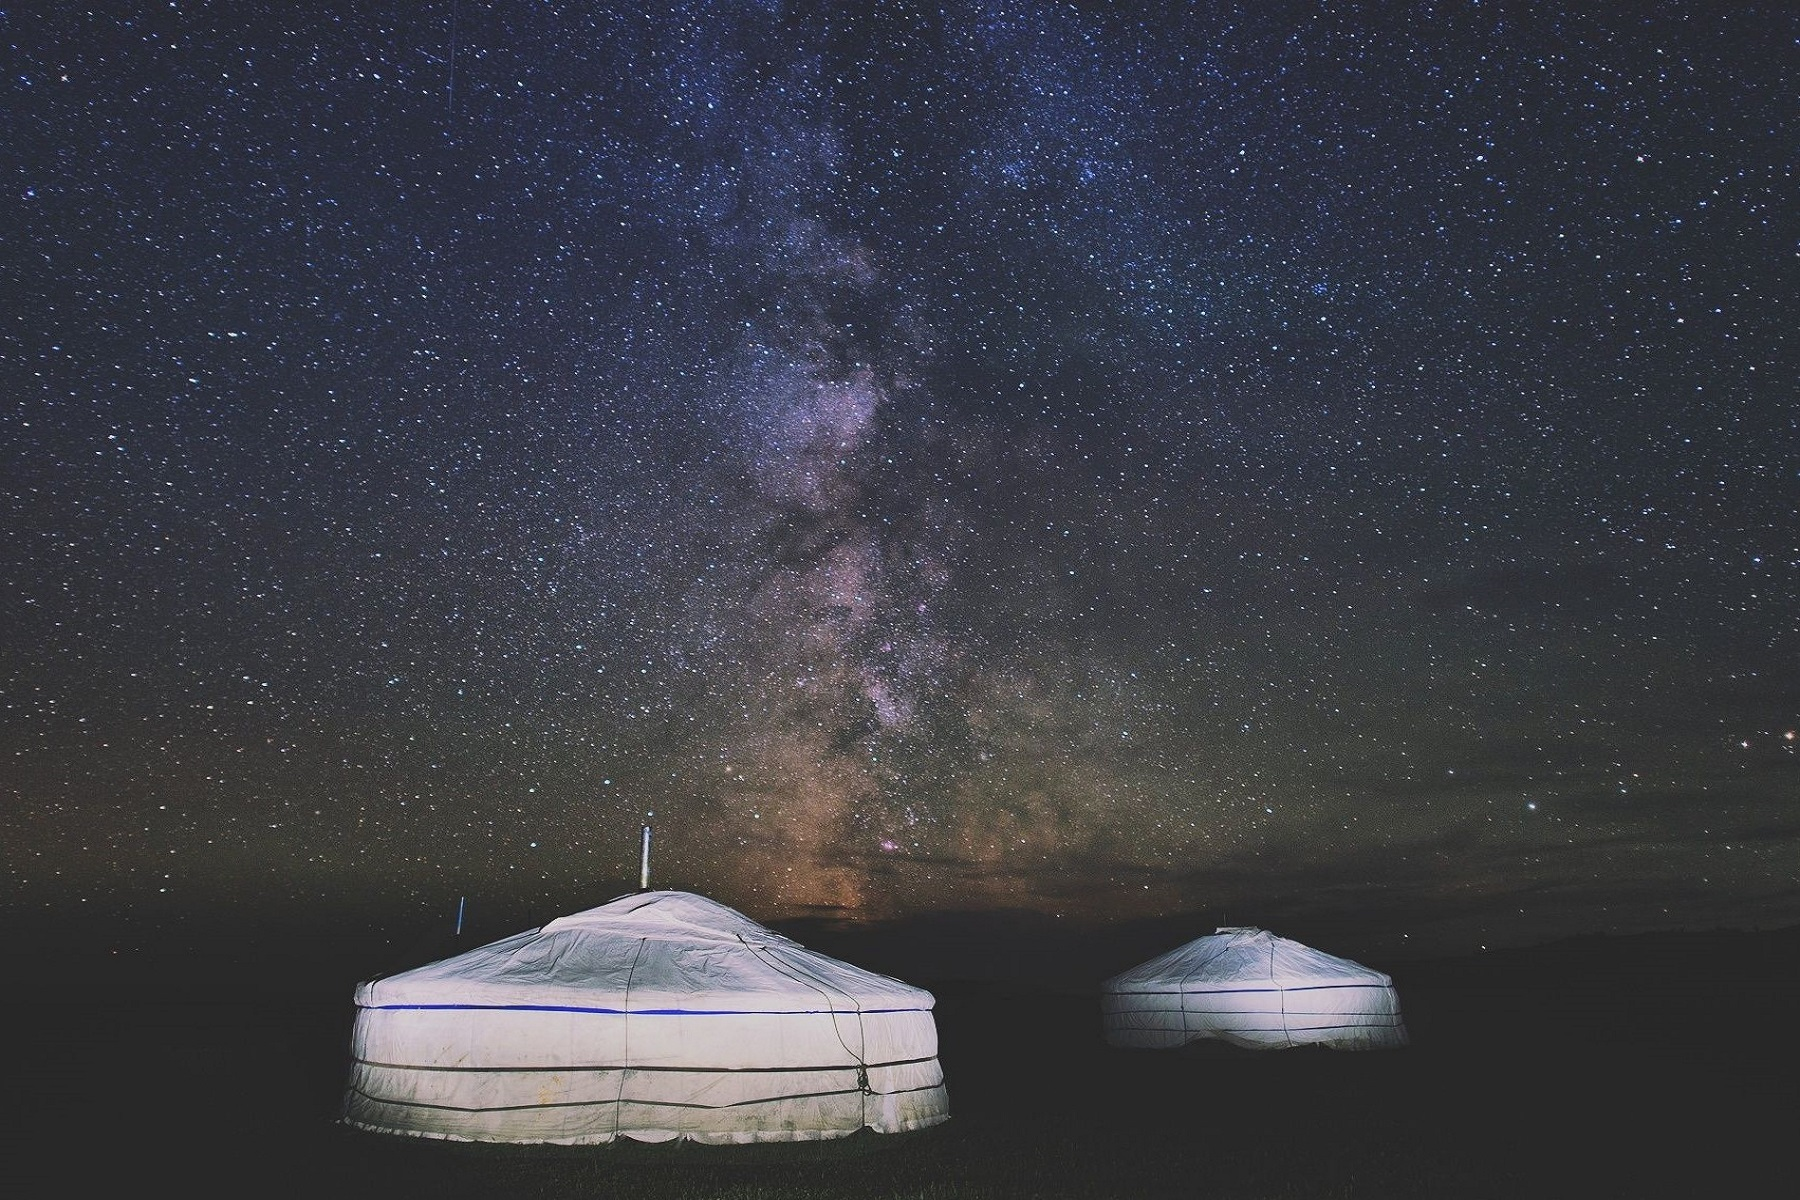 mongolia gher notte